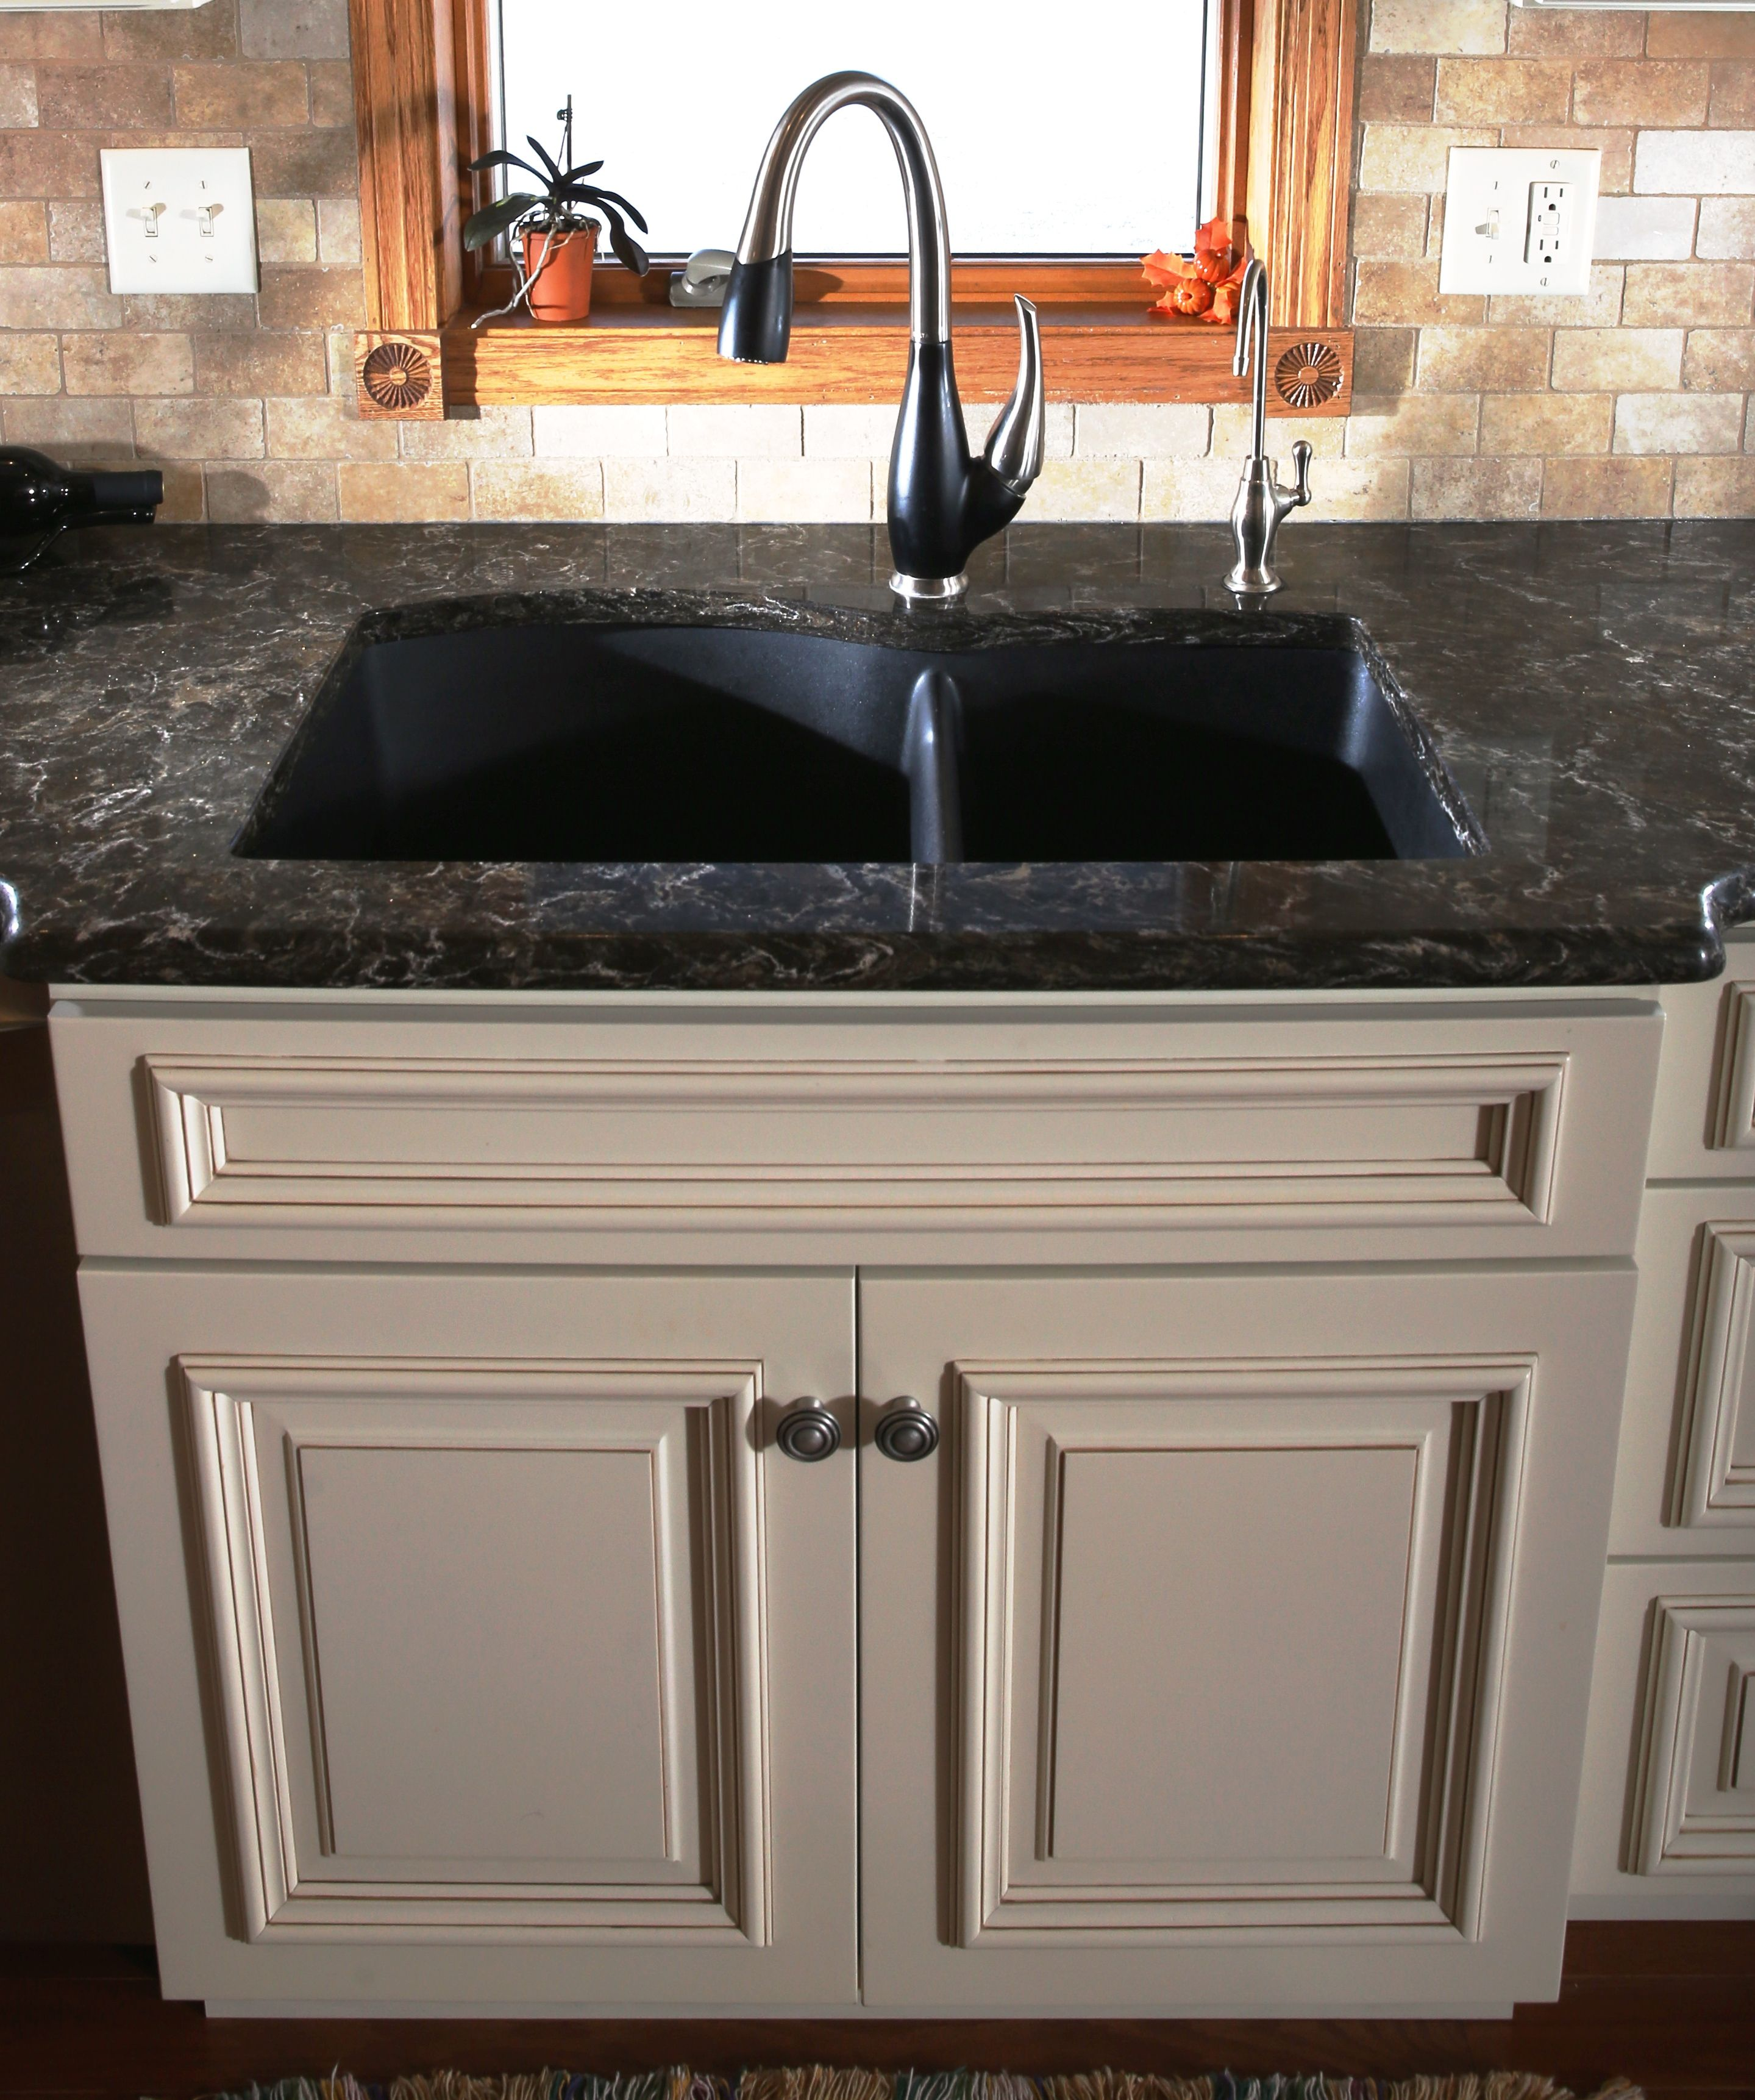 Eggshell Kitchen Cabinets Eggshell Prefinished Brown Glazed Birch Wood Cabinets Paired The